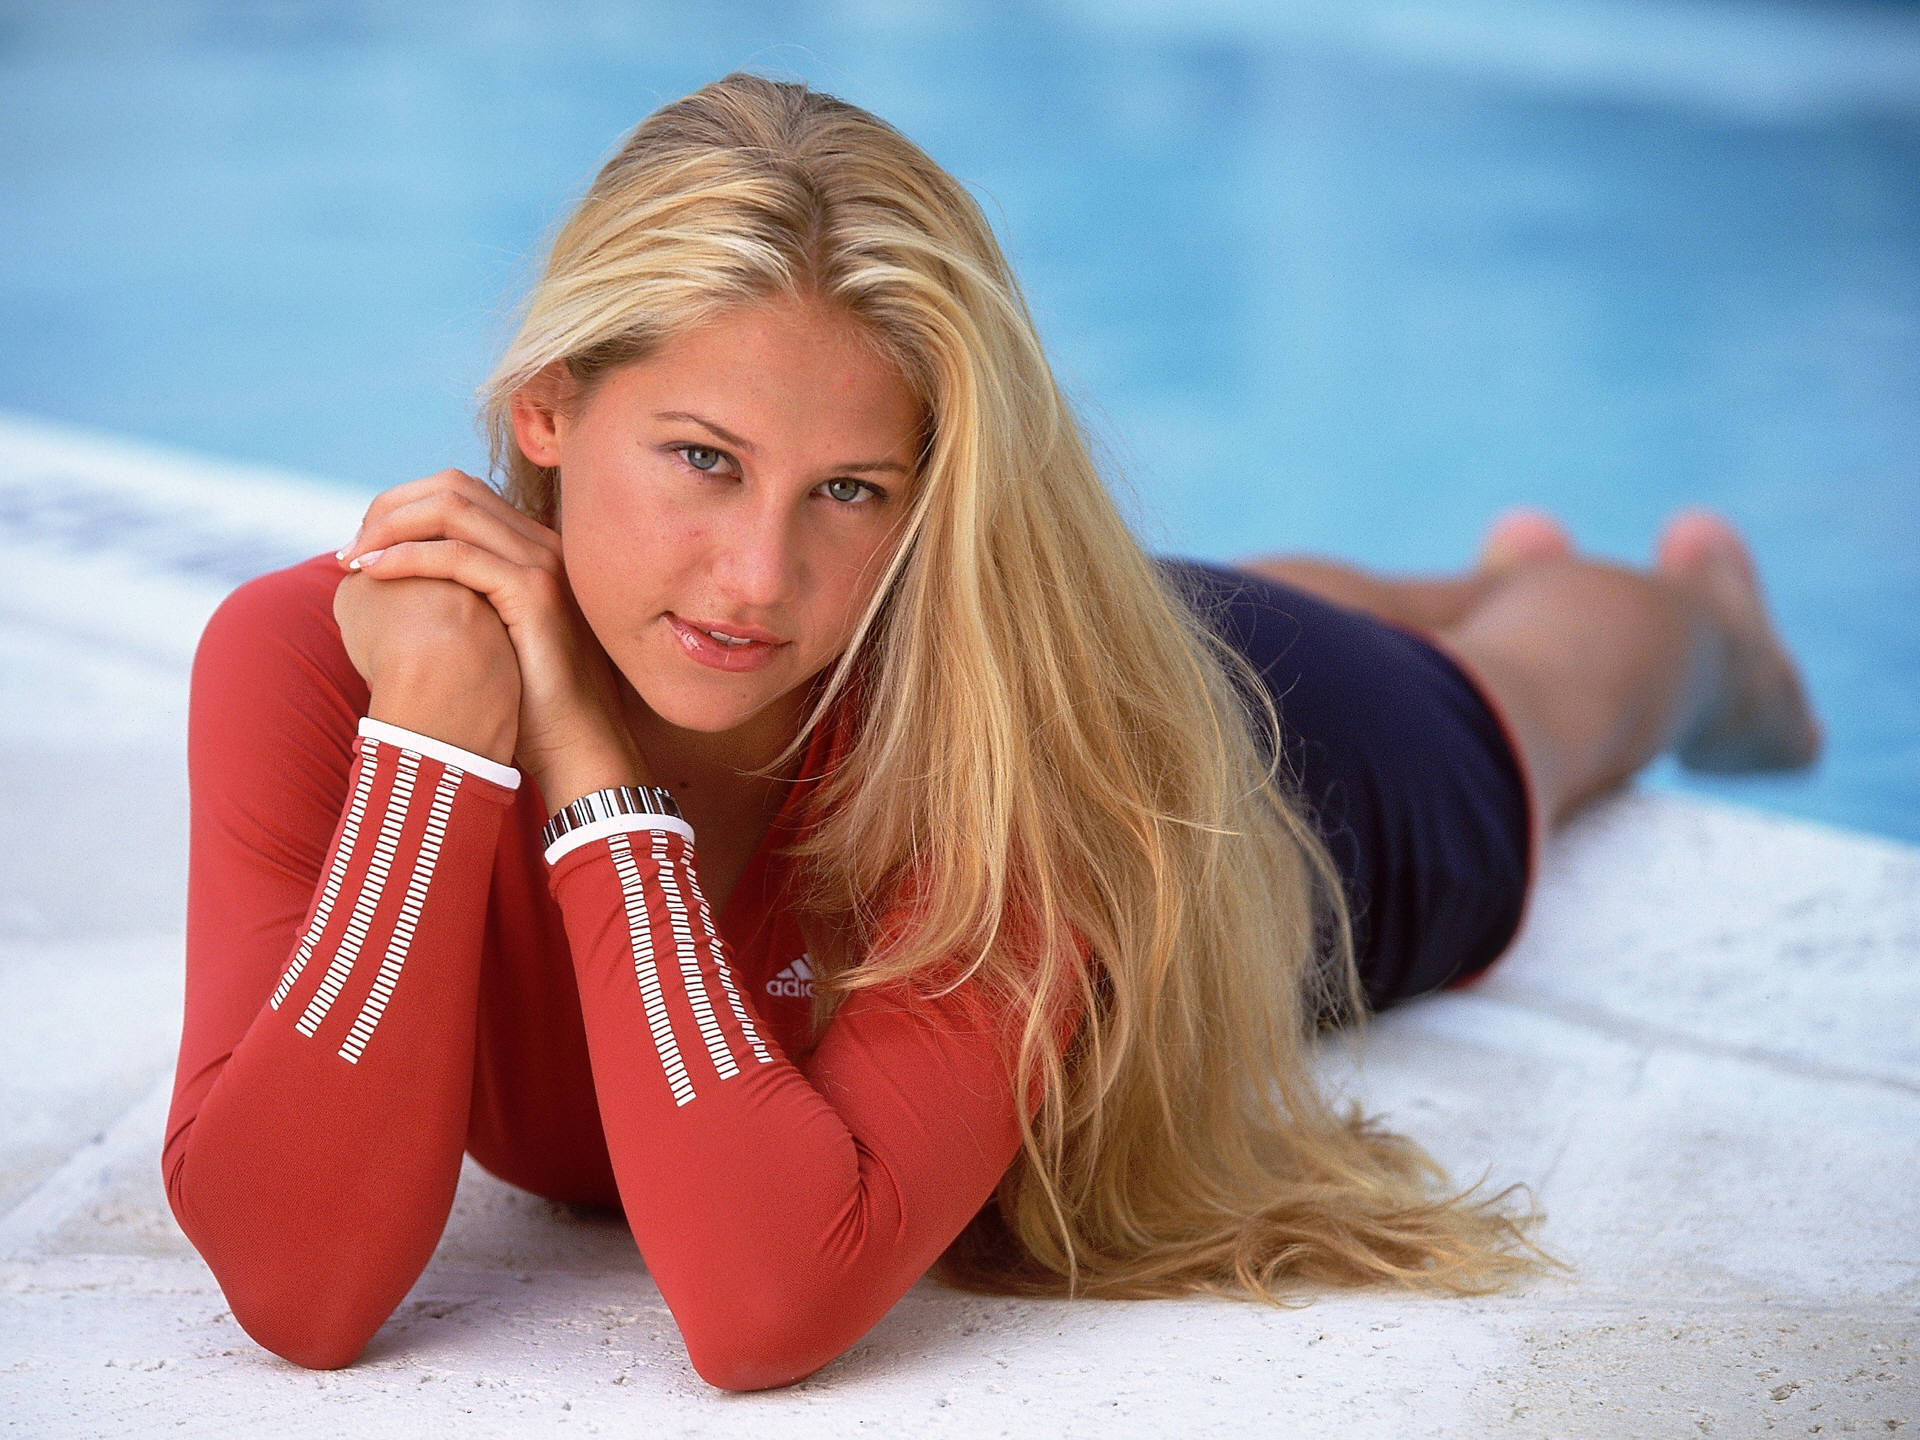 Anna Kournikova Wallpapers HD Desktop and Mobile Backgrounds